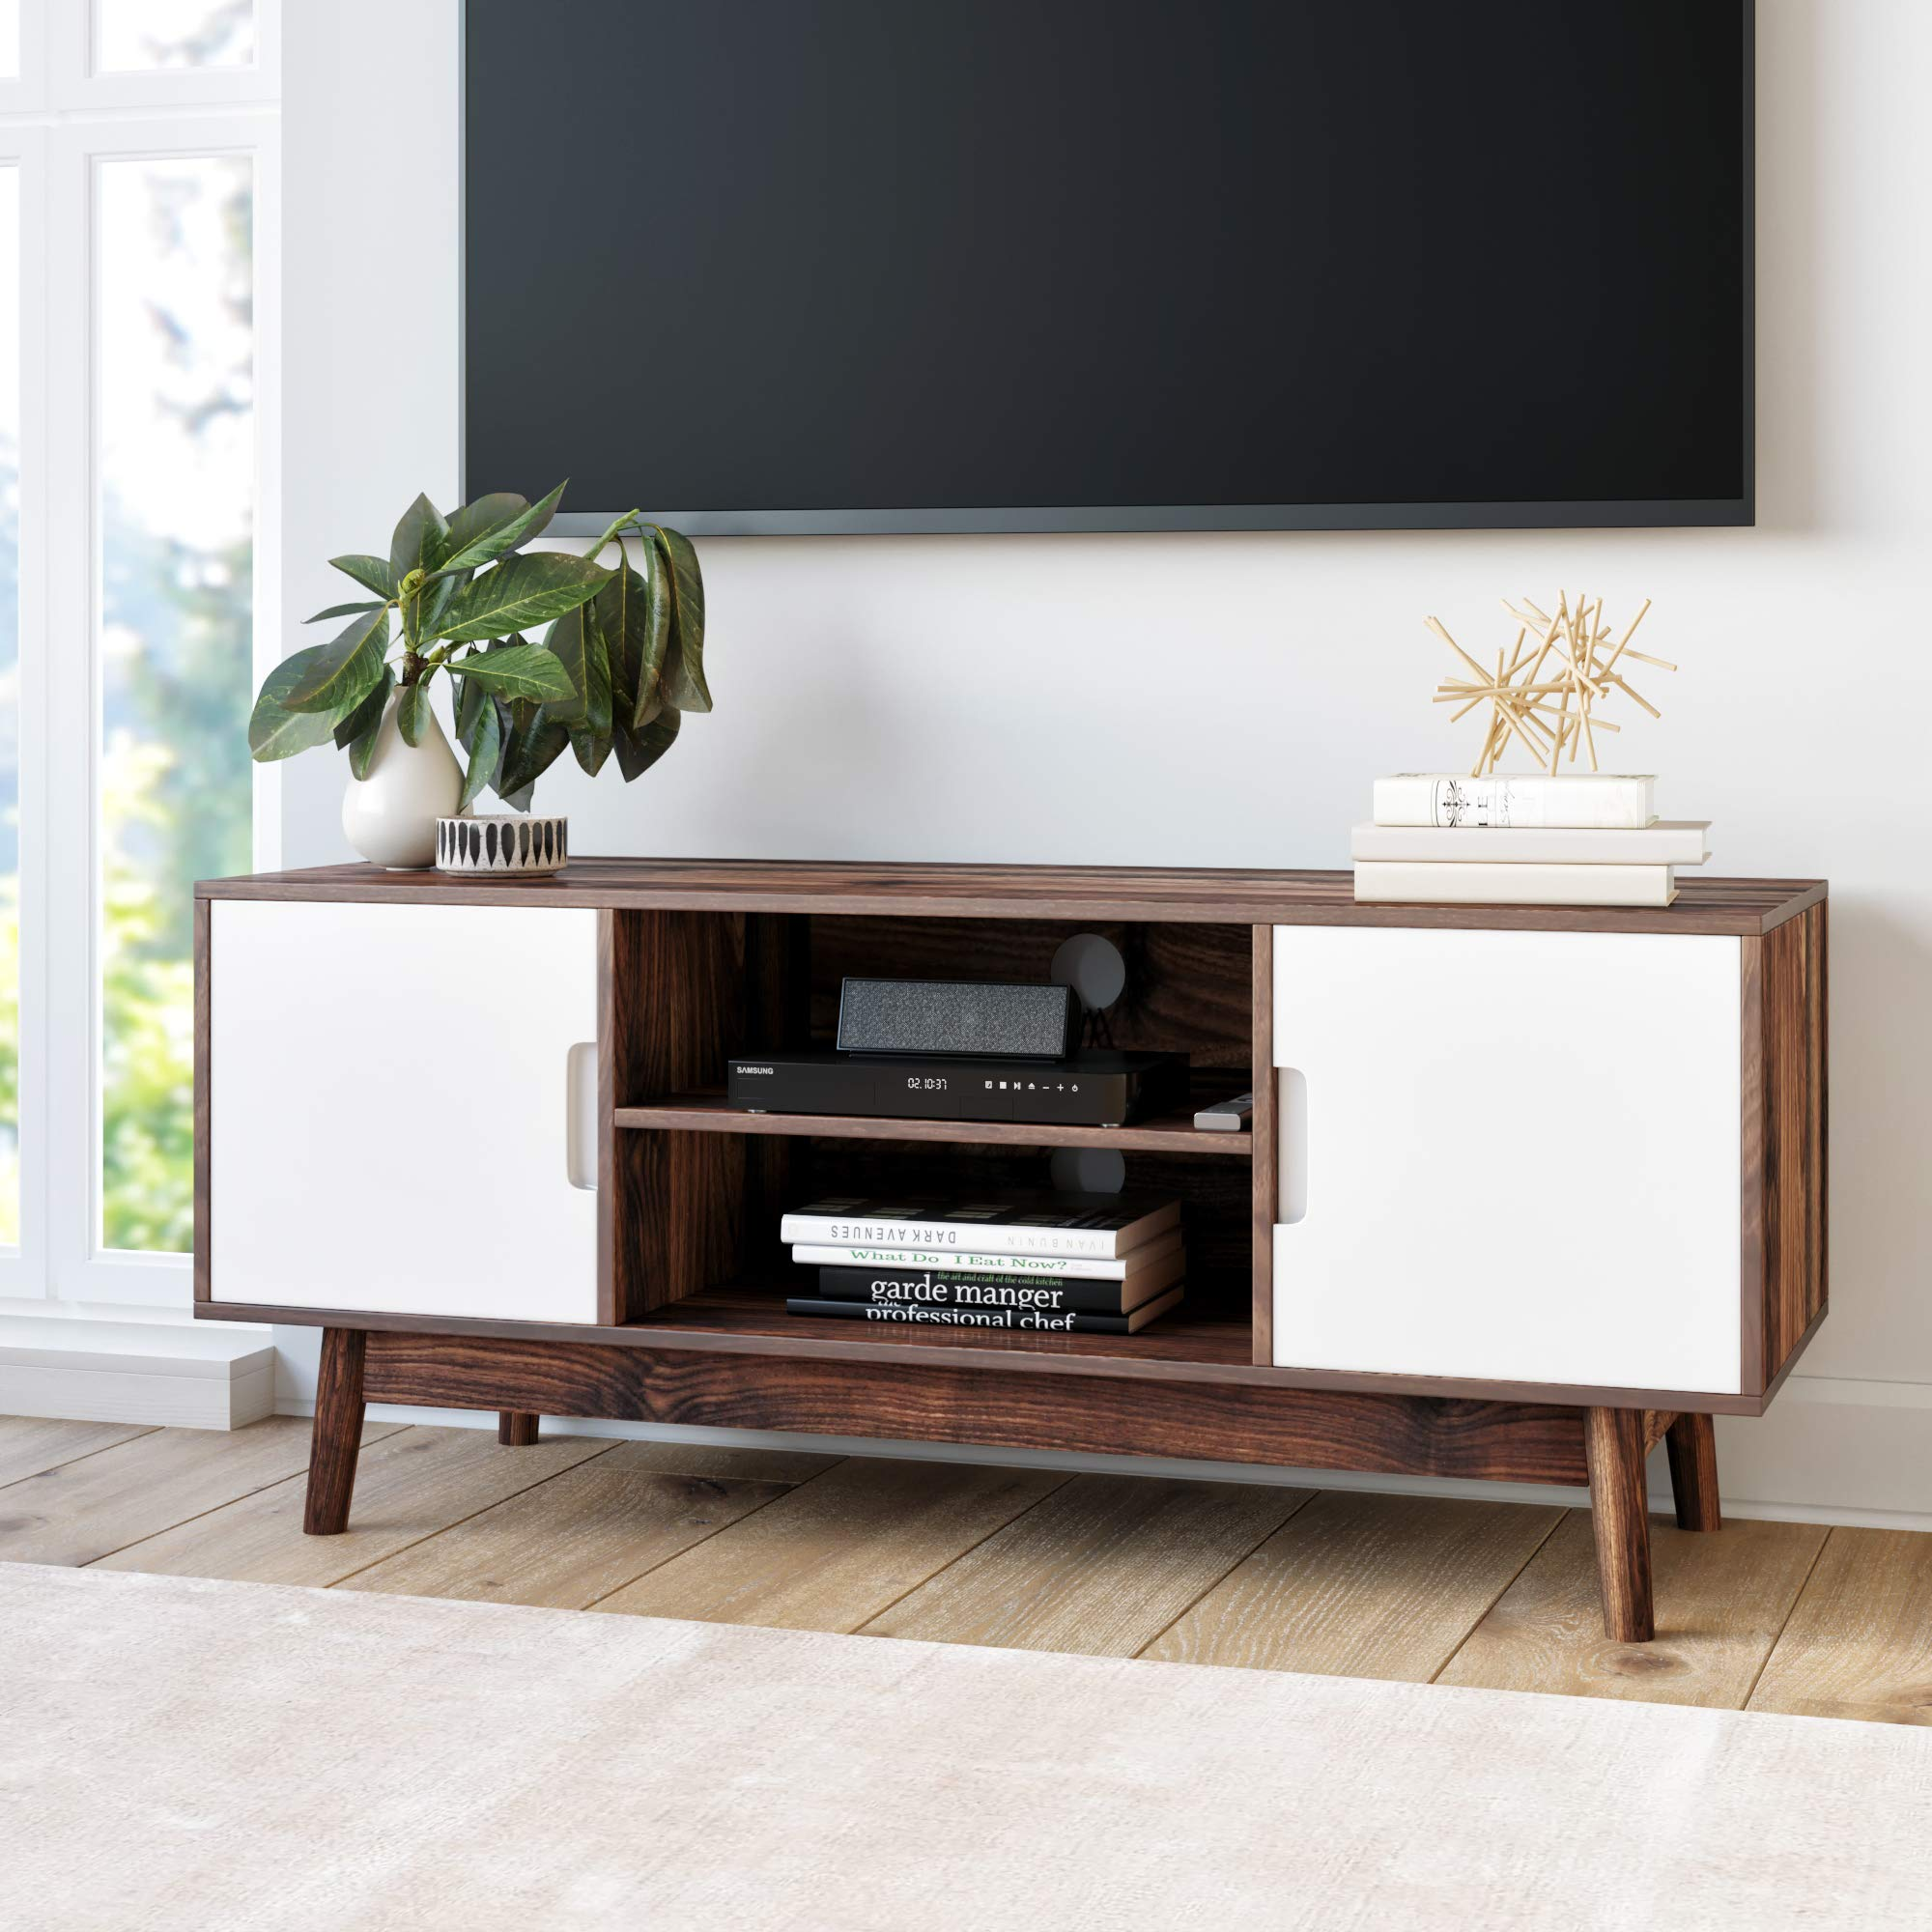 Nathan James 74401 Wesley Scandinavian TV Stand Media Console with Cabinet Doors, Walnut Brown by Nathan James